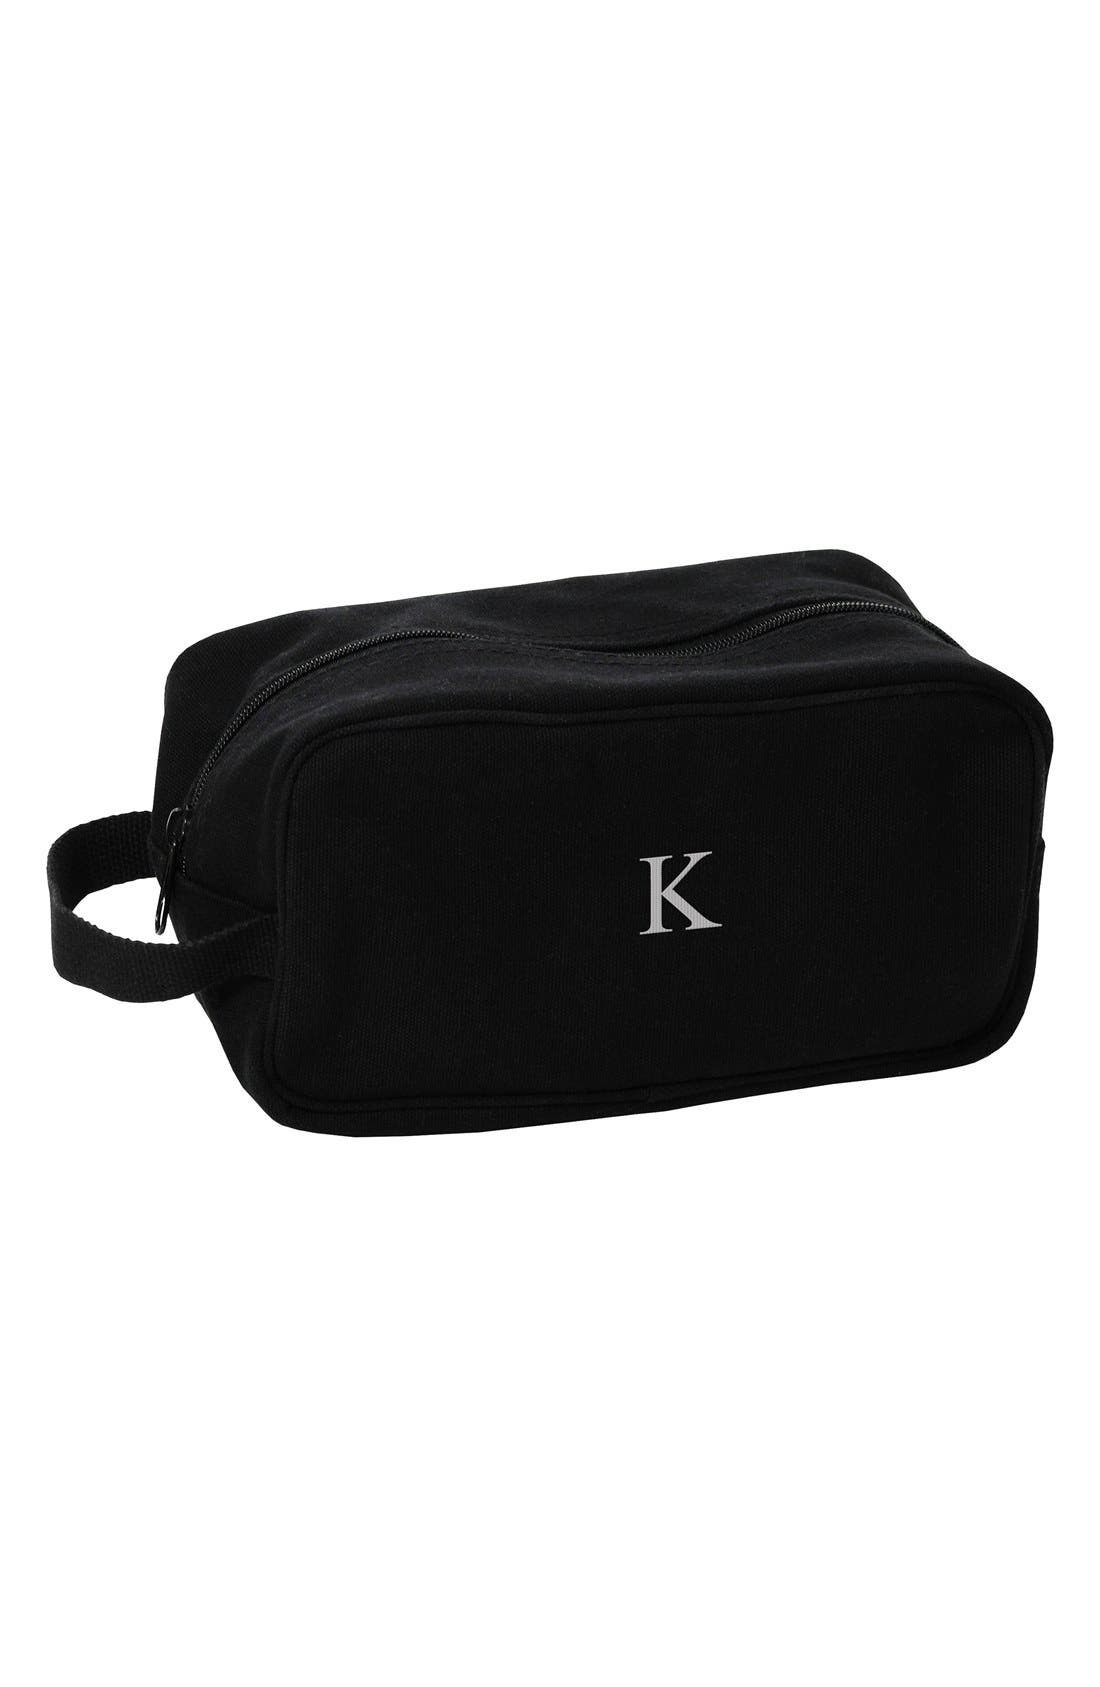 Main Image - Cathy's Concepts Monogram Canvas Travel Bag